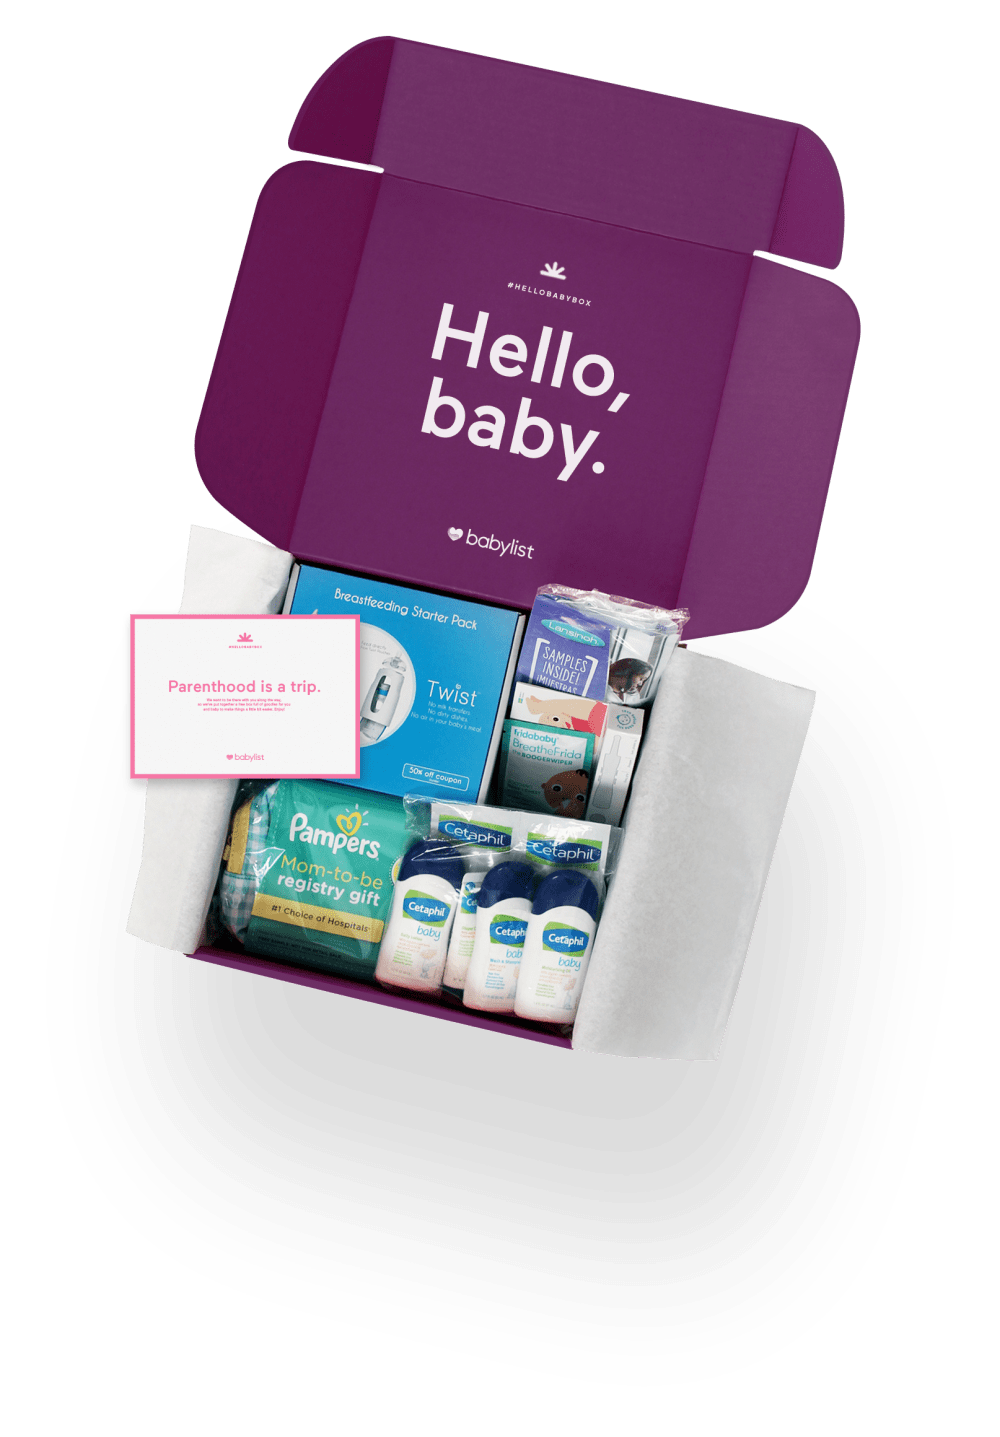 Get Your Free Hello Baby Box